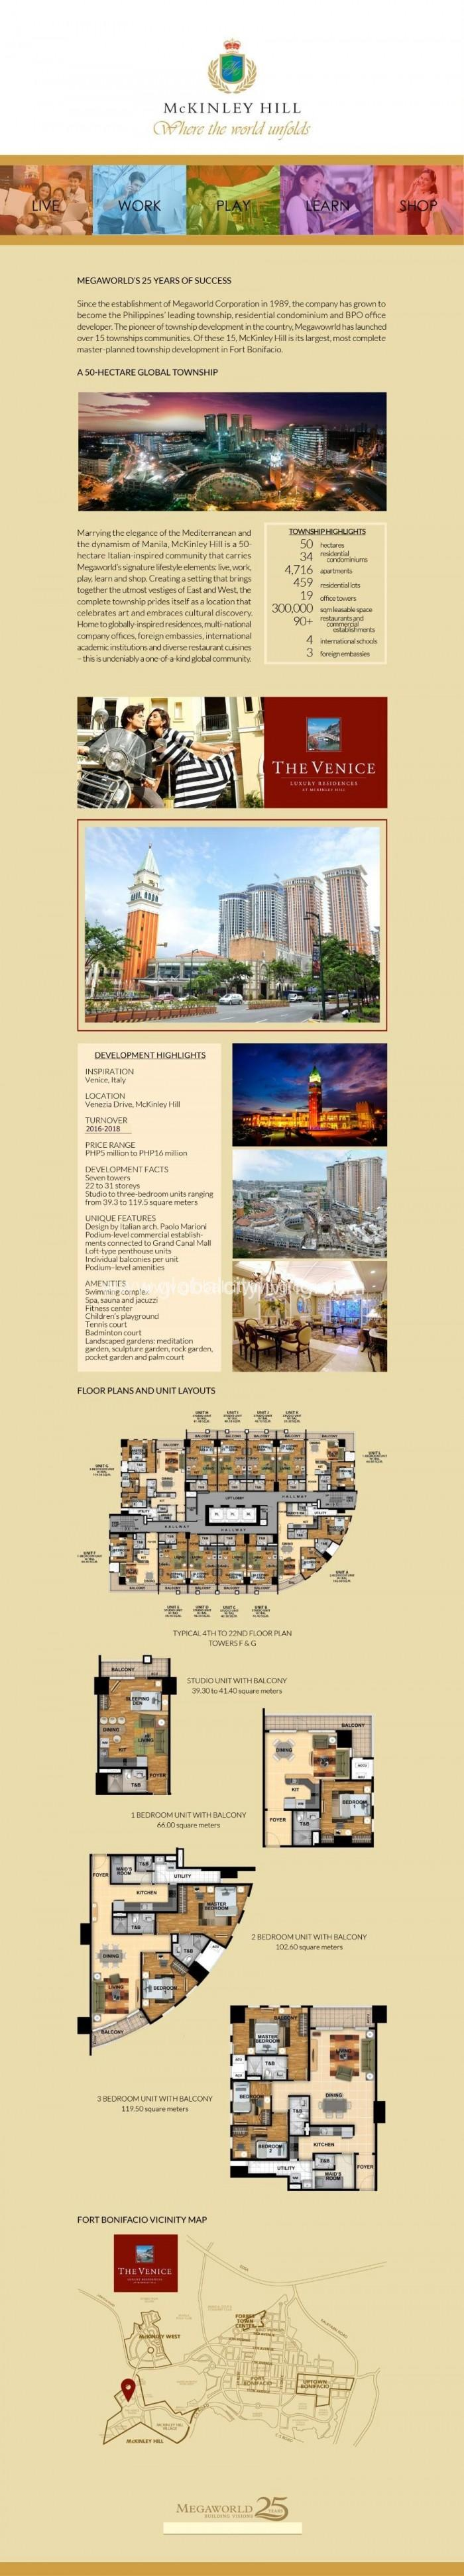 the-venice-in-mackinley-hill-condos-for-sale-Newsletter-Bien